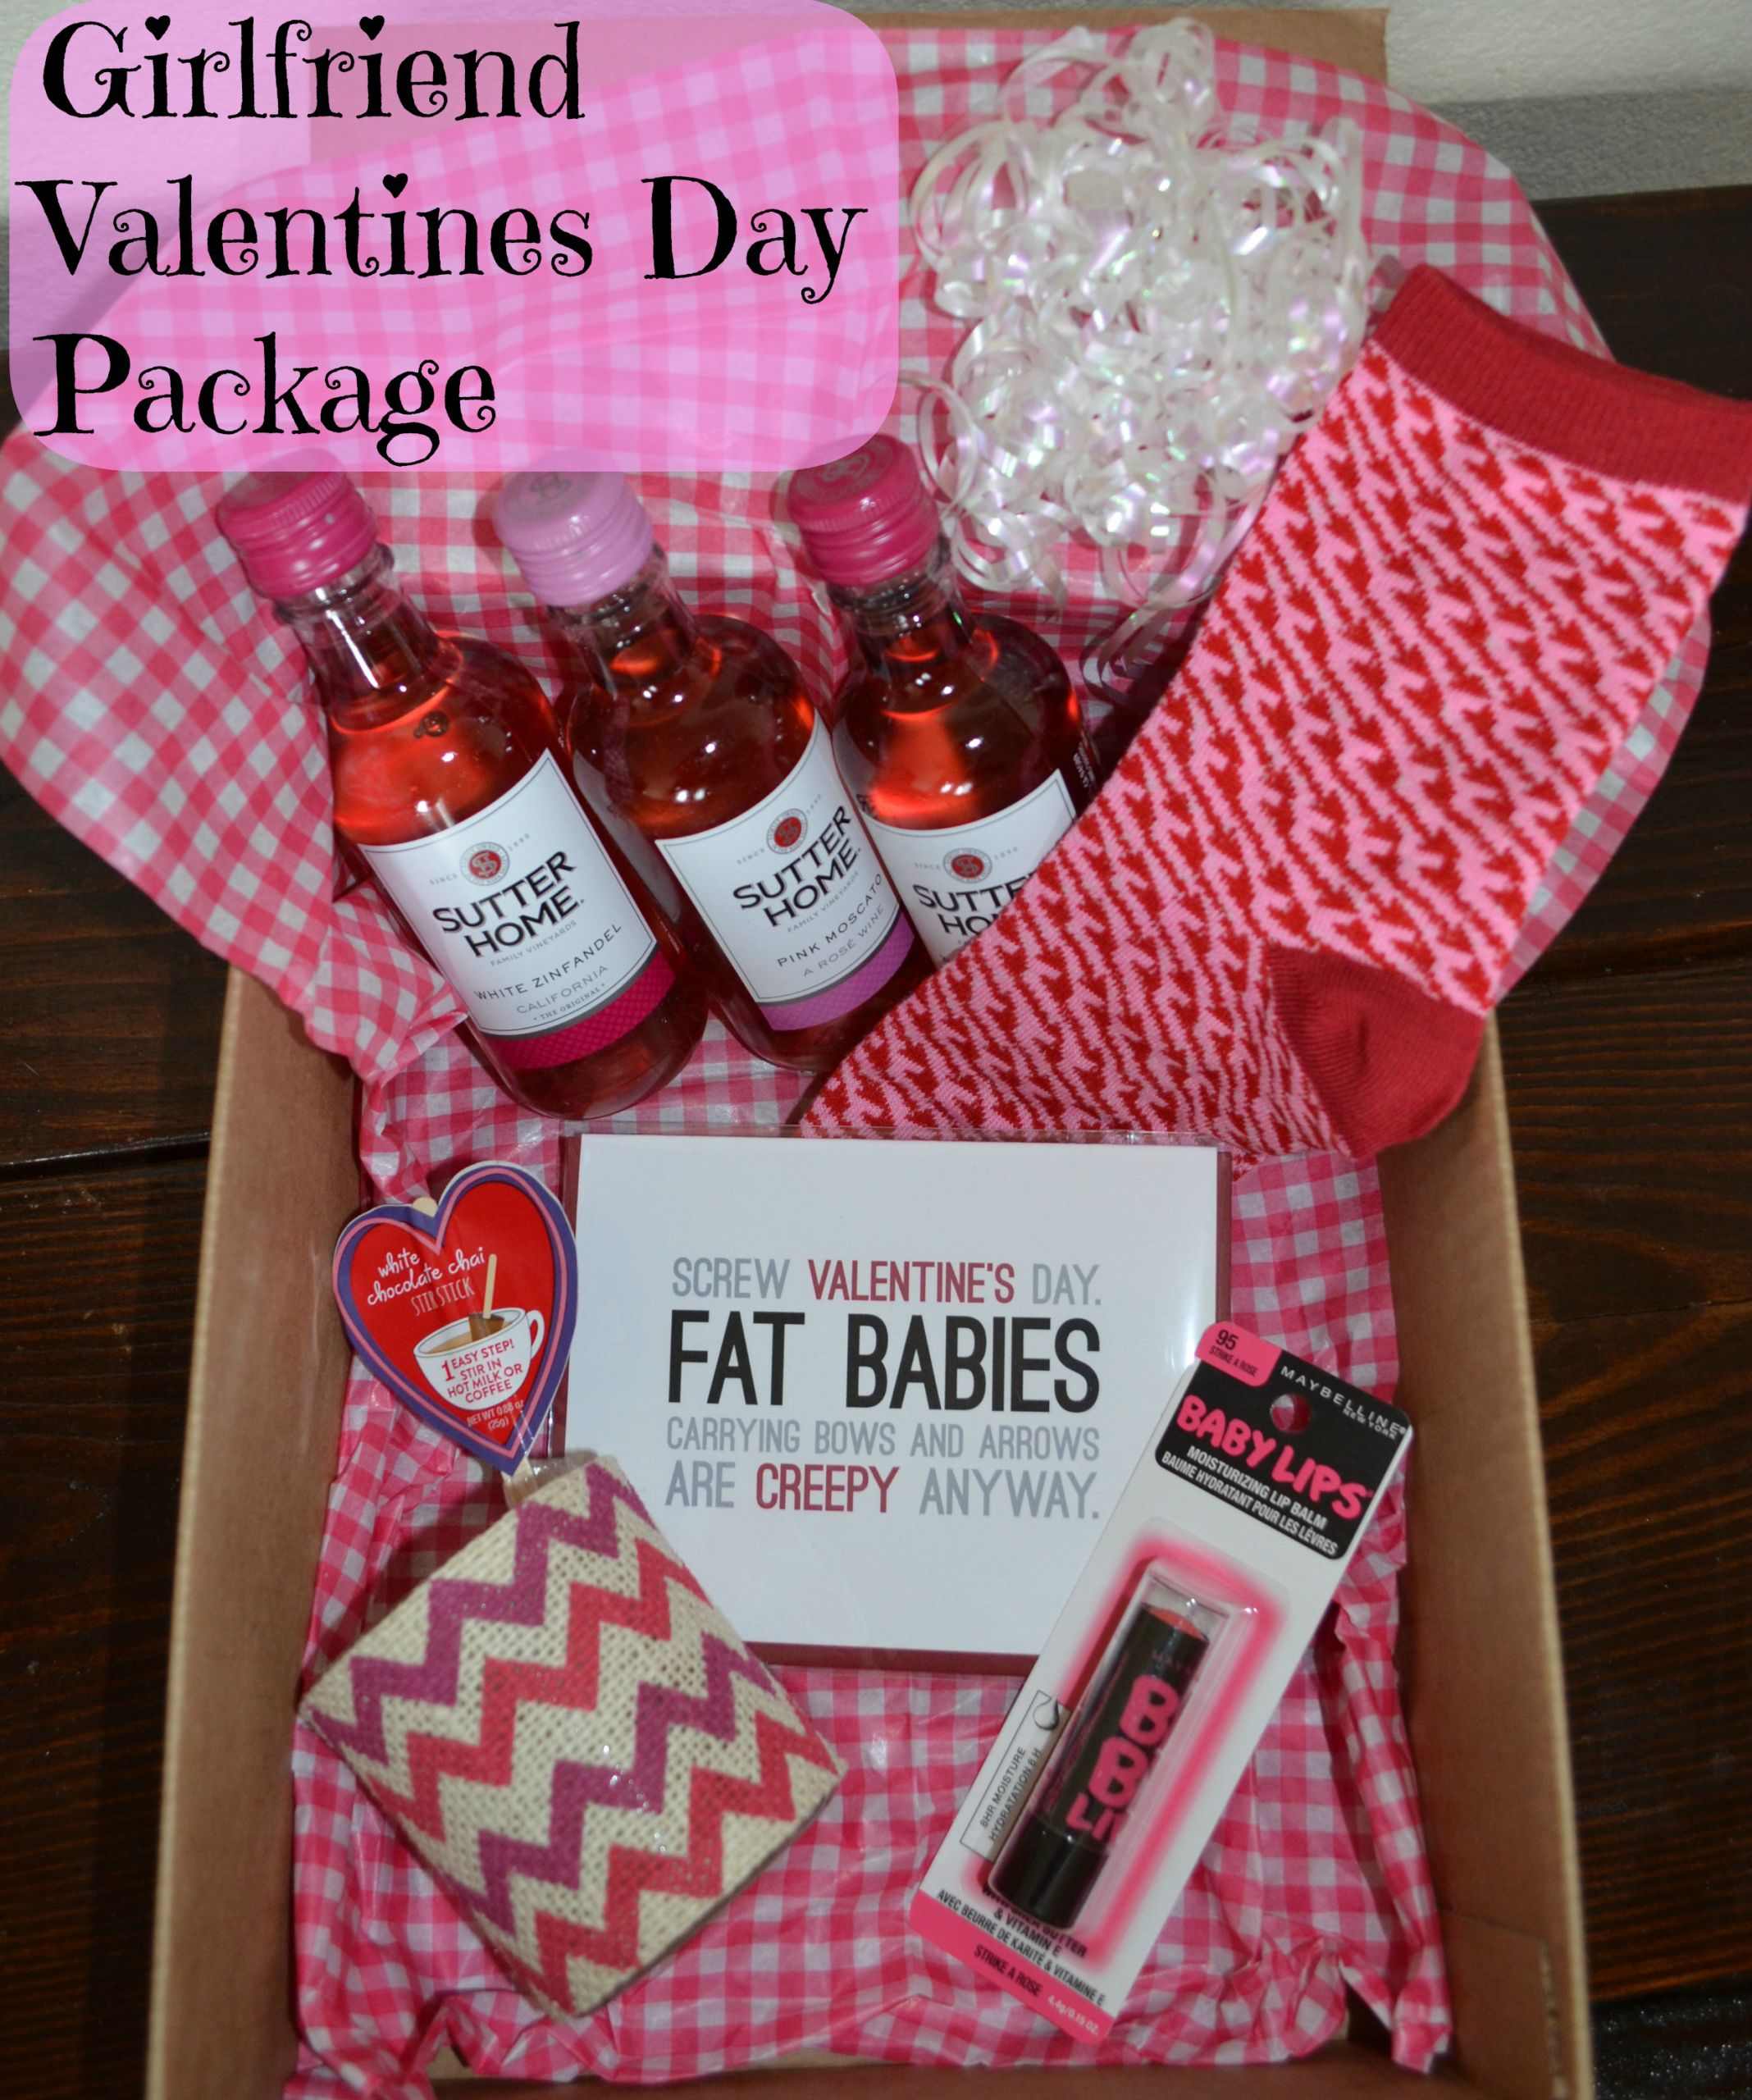 Valentine Boyfriend Gift Ideas  24 LOVELY VALENTINE S DAY GIFTS FOR YOUR BOYFRIEND